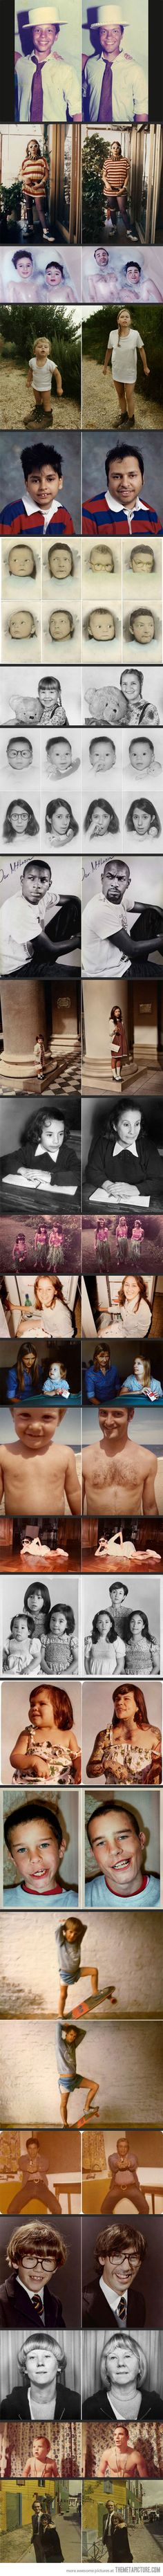 Then and Now Photos. great gift for parents - these kill me